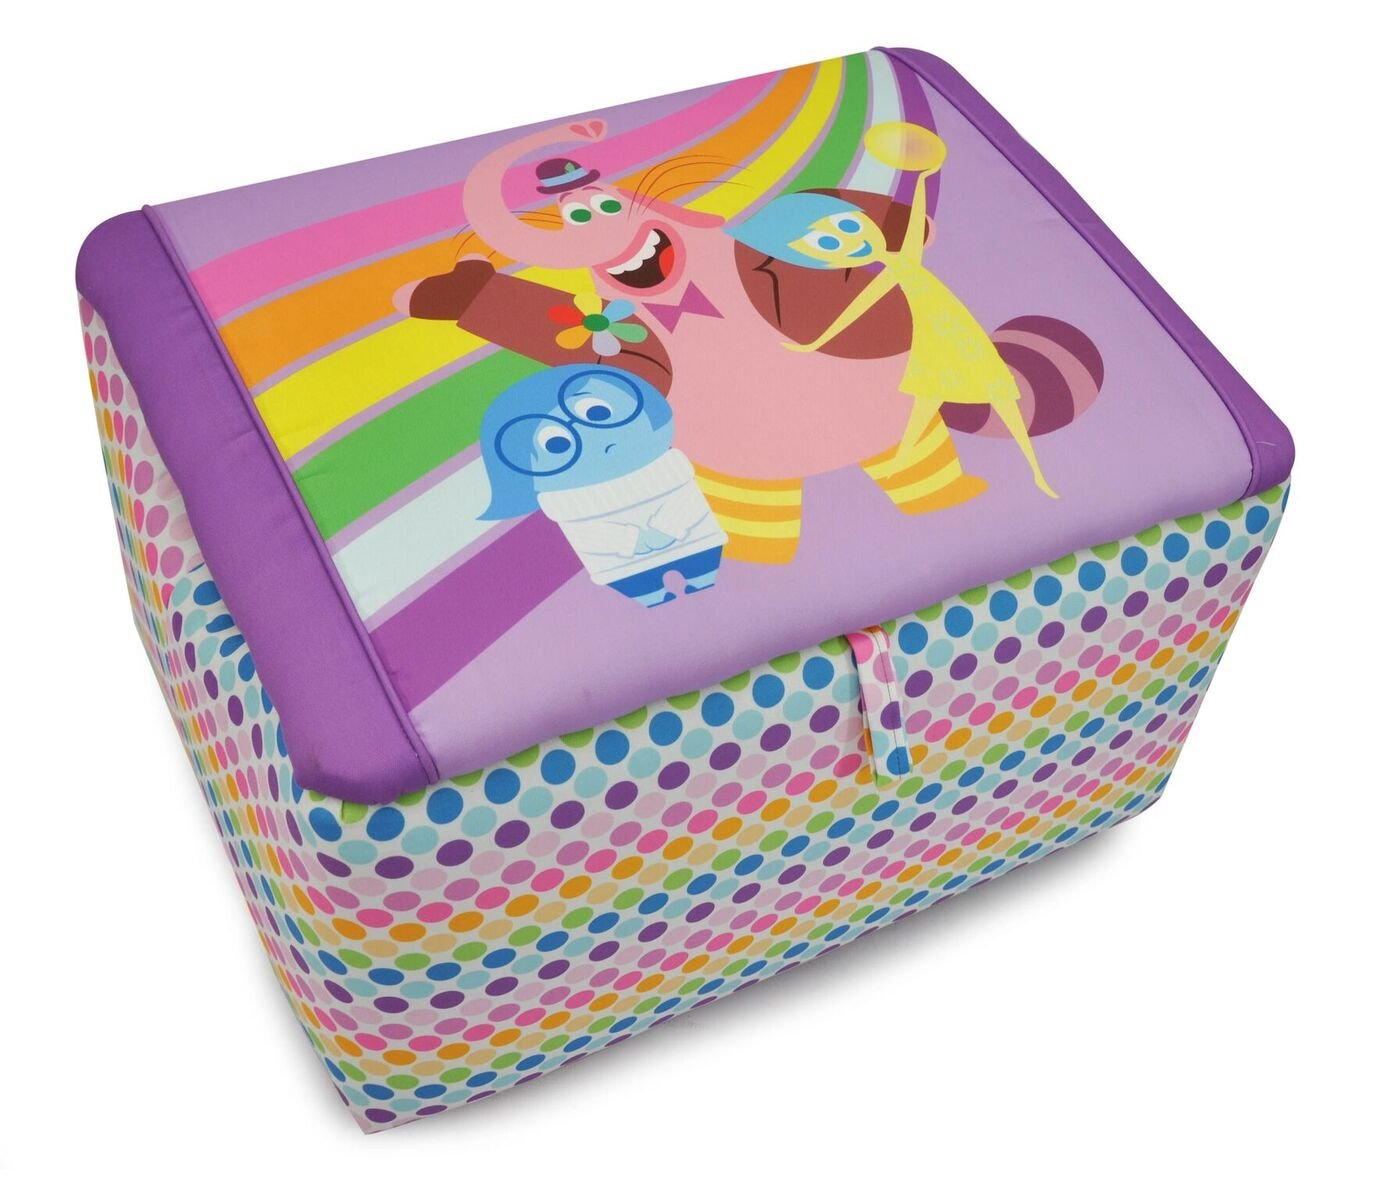 Kidz World Inside Out Upholstered Storage Bench by Kidz World